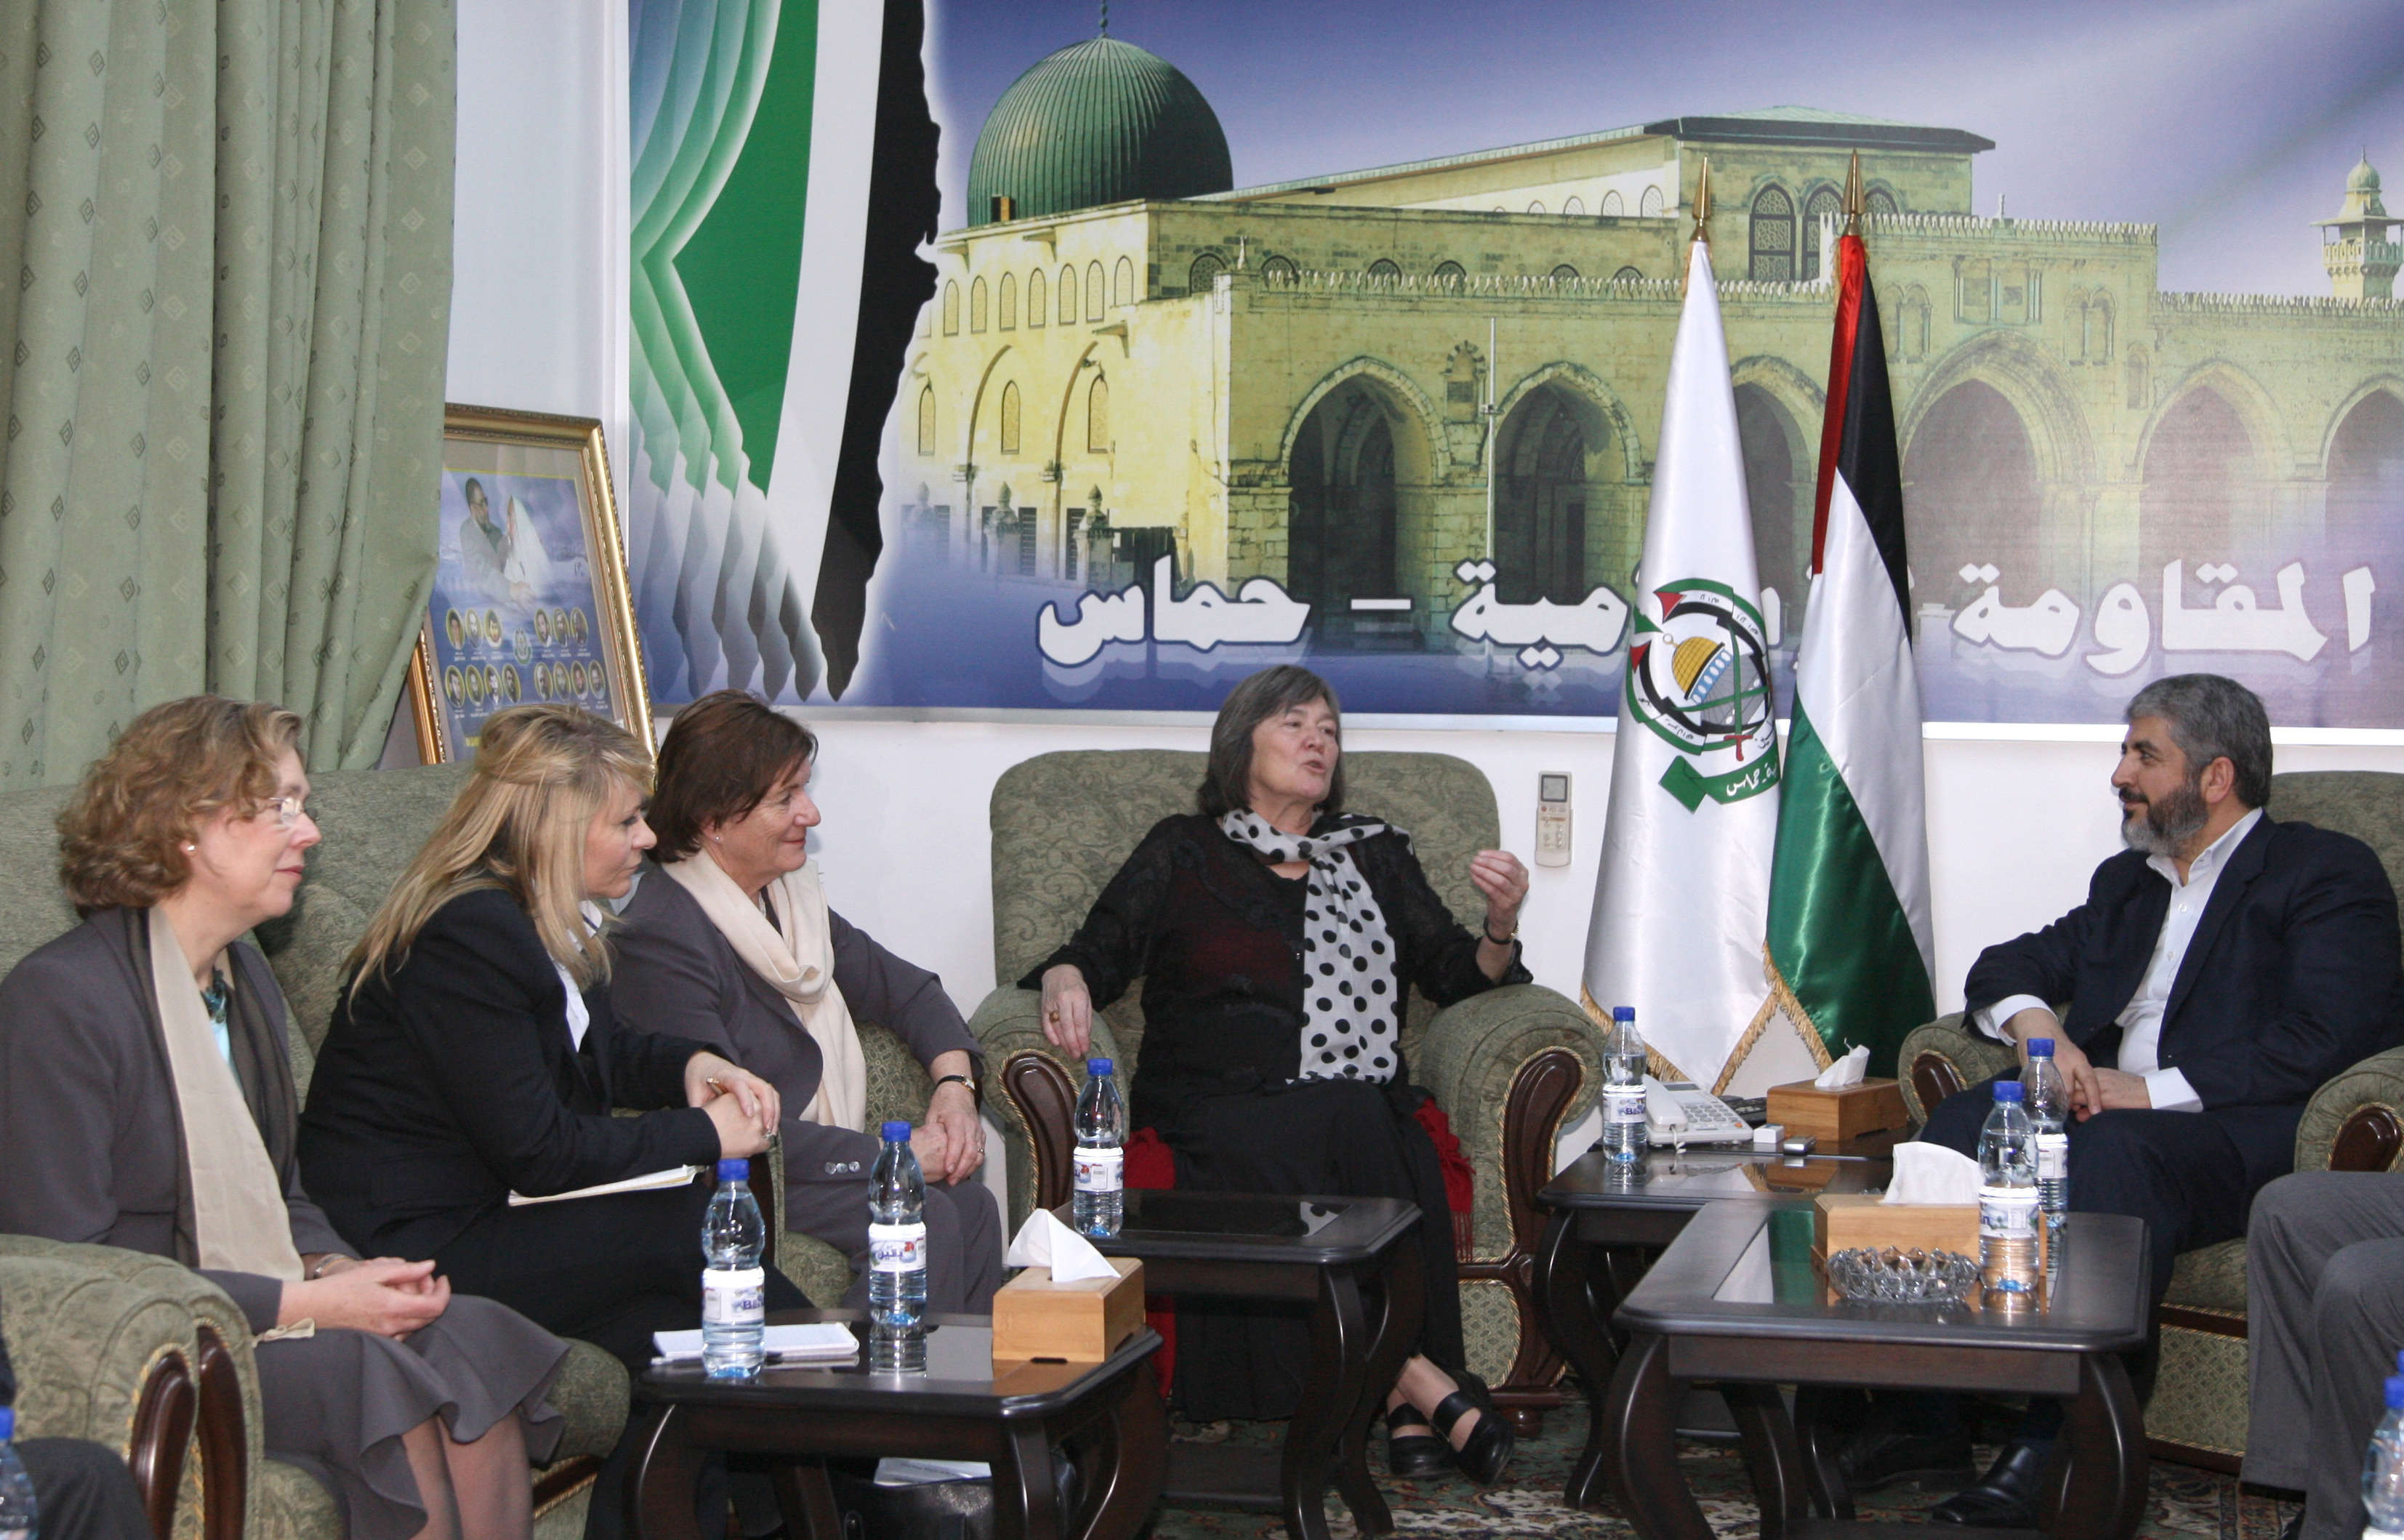 Hamas leader Khaled Meshaal (R) meets British members of parliament including British Baroness Jenny Tonge (3rd L) in Damascus March 14, 2009. (Reuters)